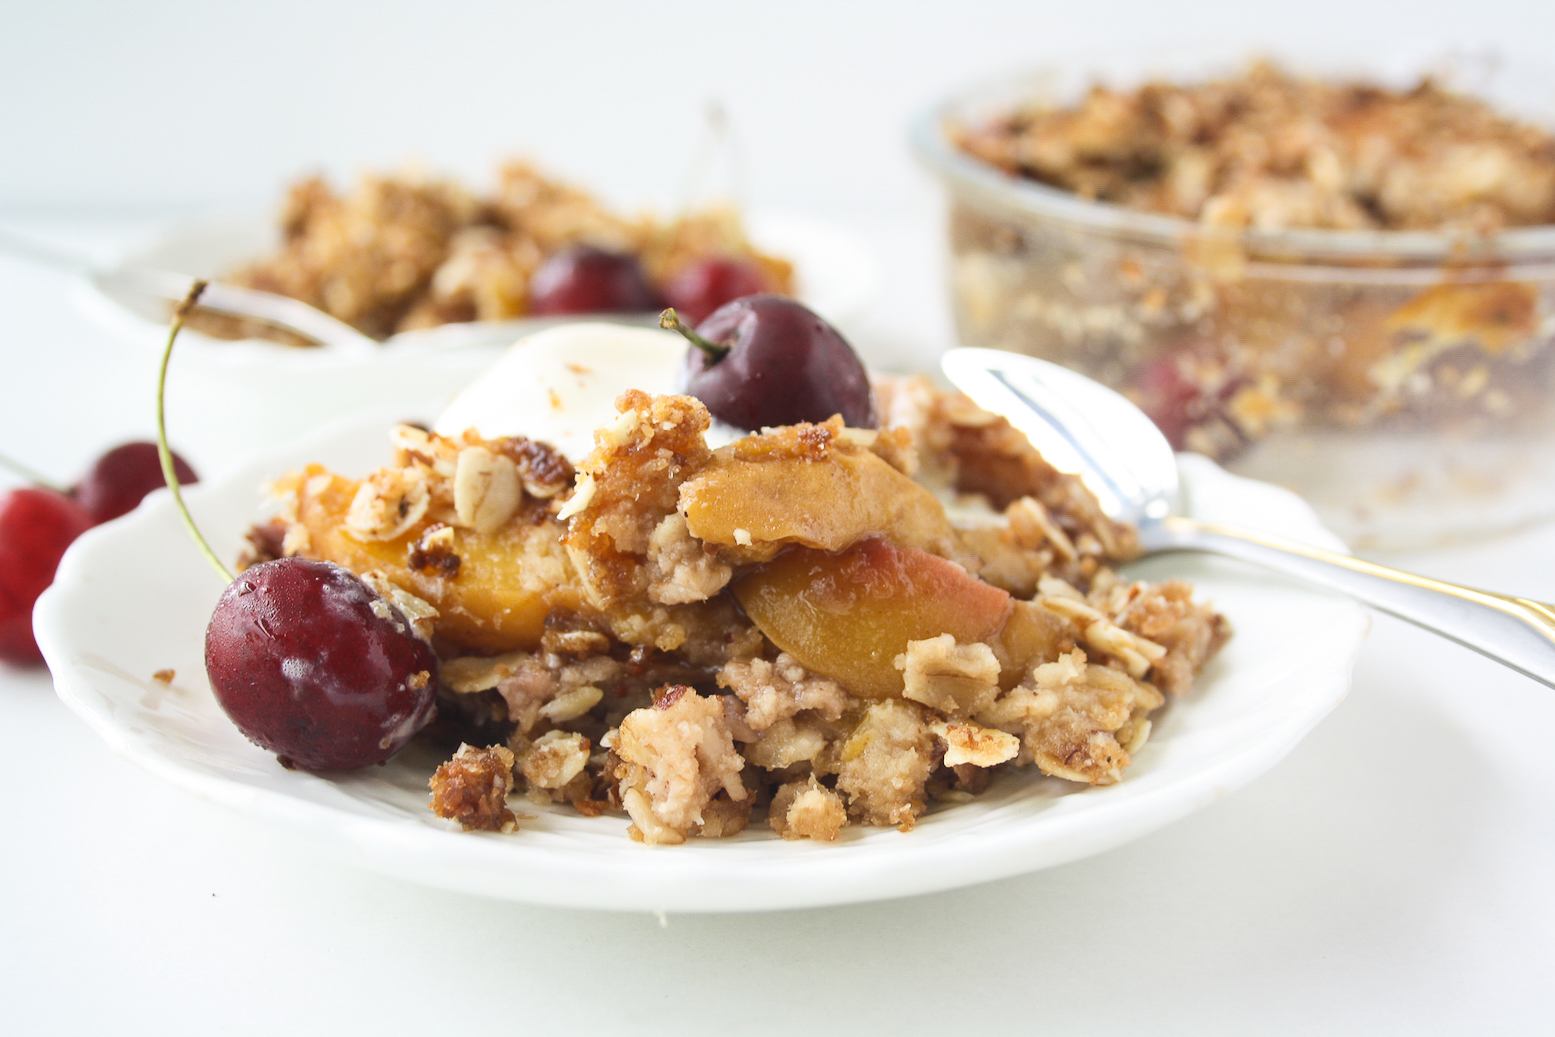 Fresh peaches and cherries with a delicious coconut oat topping make this vegan, gluten-free crisp the perfect summer dessert!